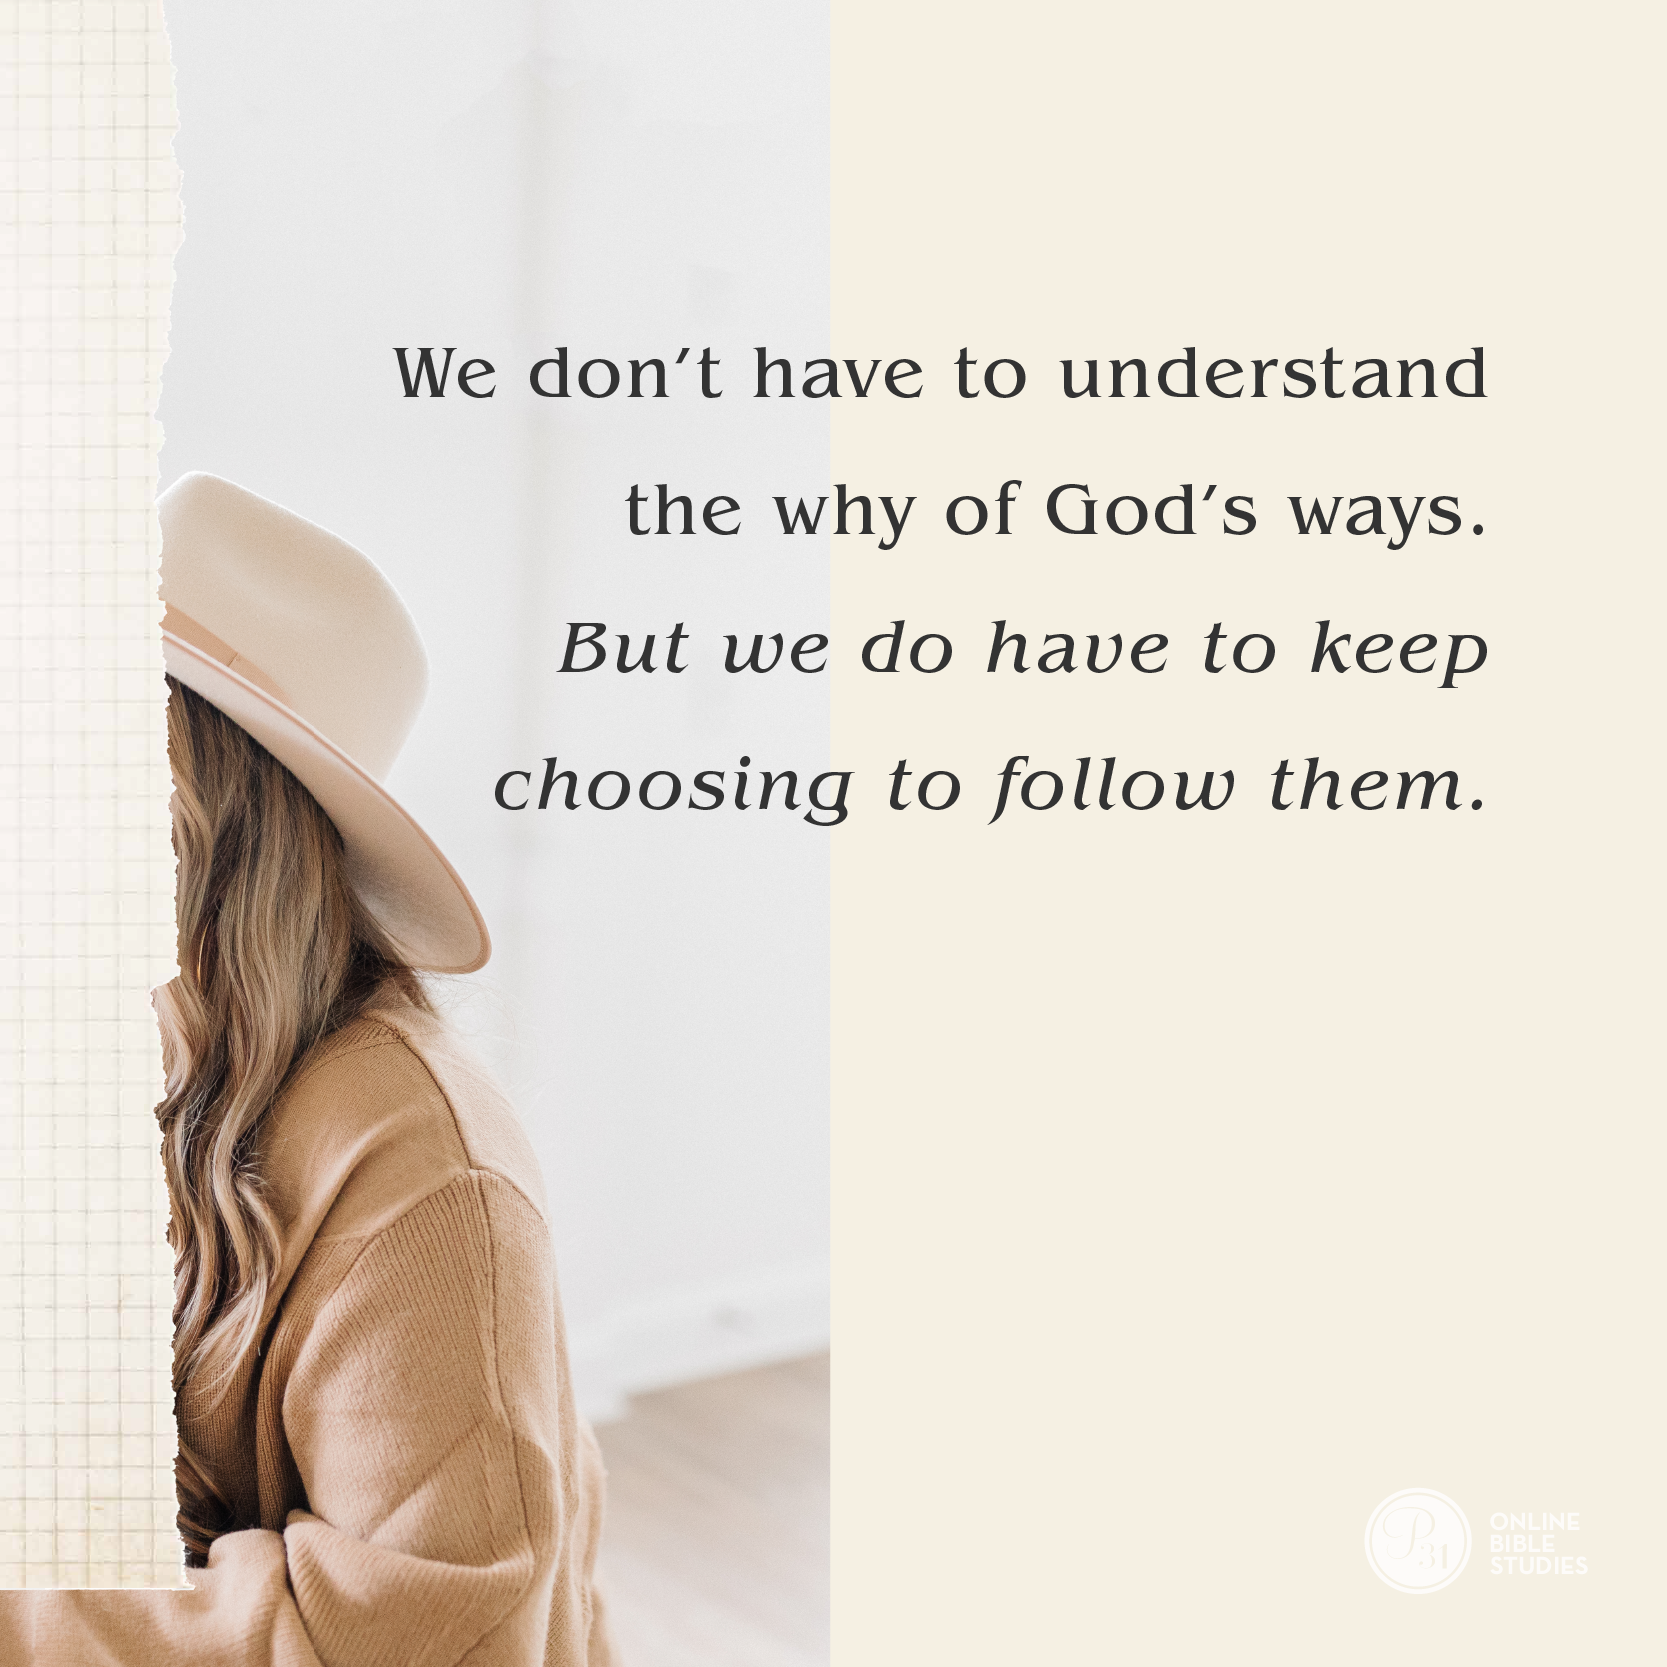 """We don't have to understand the why of God's ways. But we do have to keep choosing to follow them."" - Lysa TerKeurst  #TrustworthyStudy 